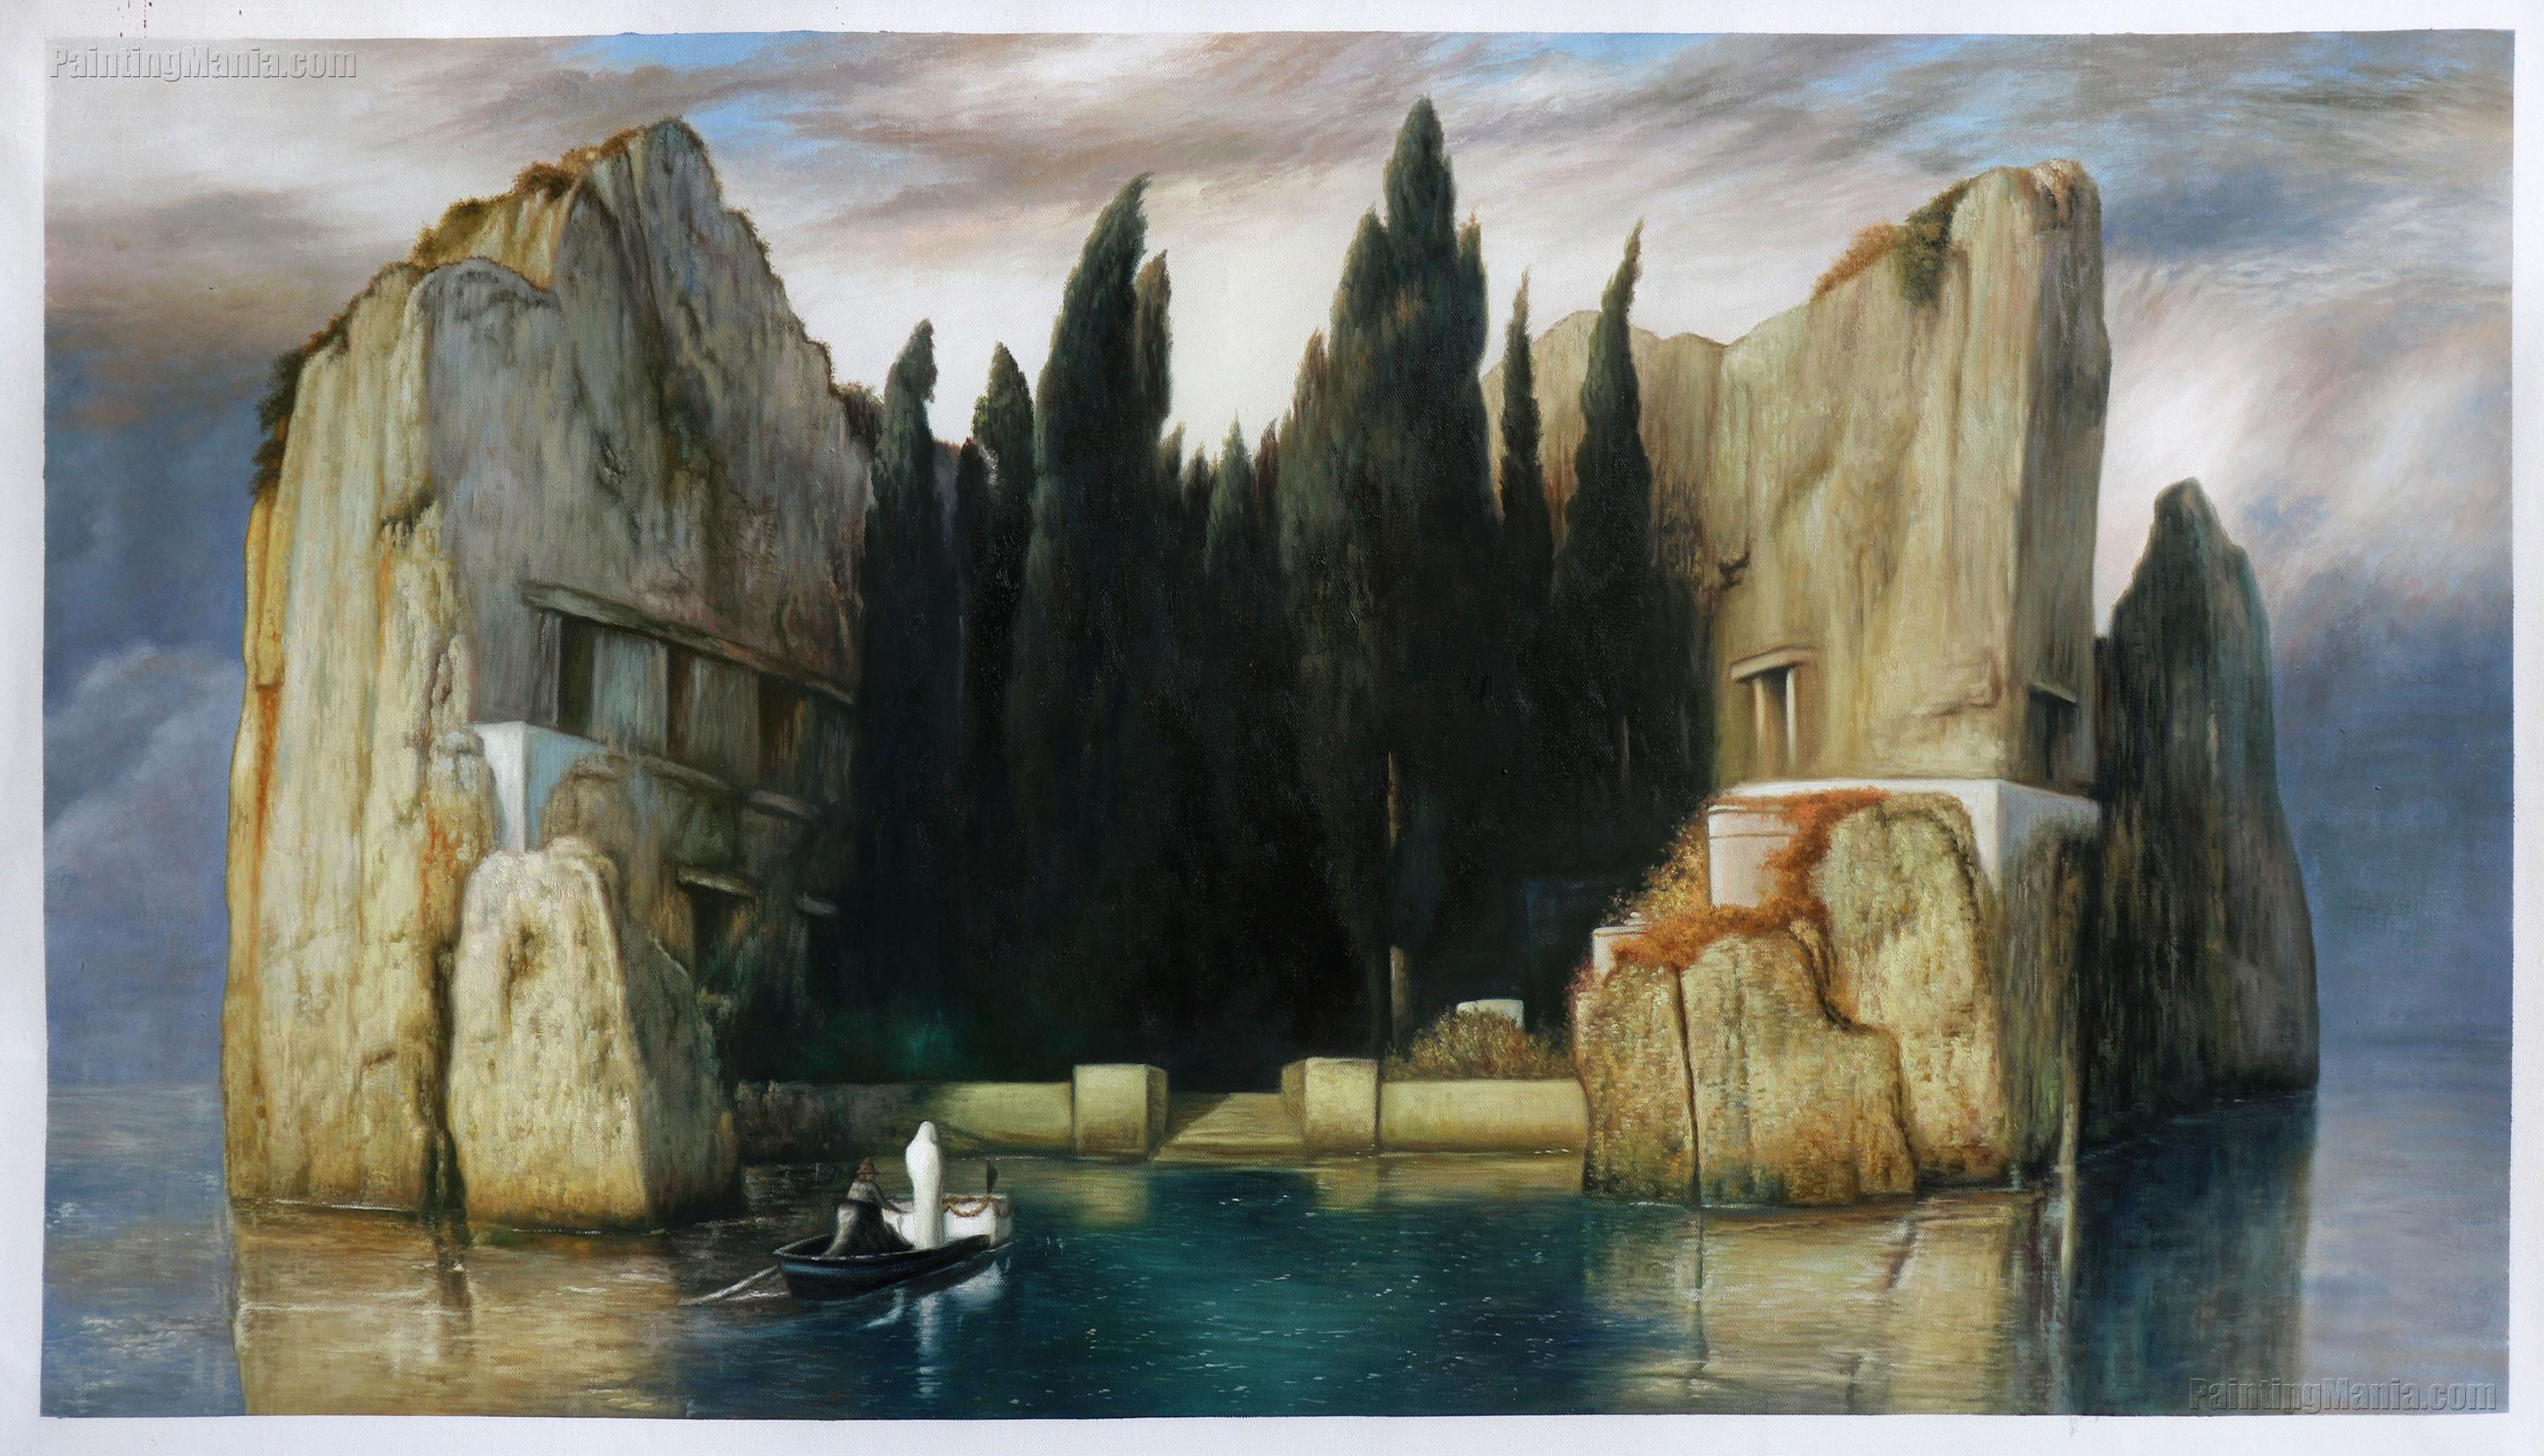 Isle of the Dead (Toteninsel) by Arnold Bocklin